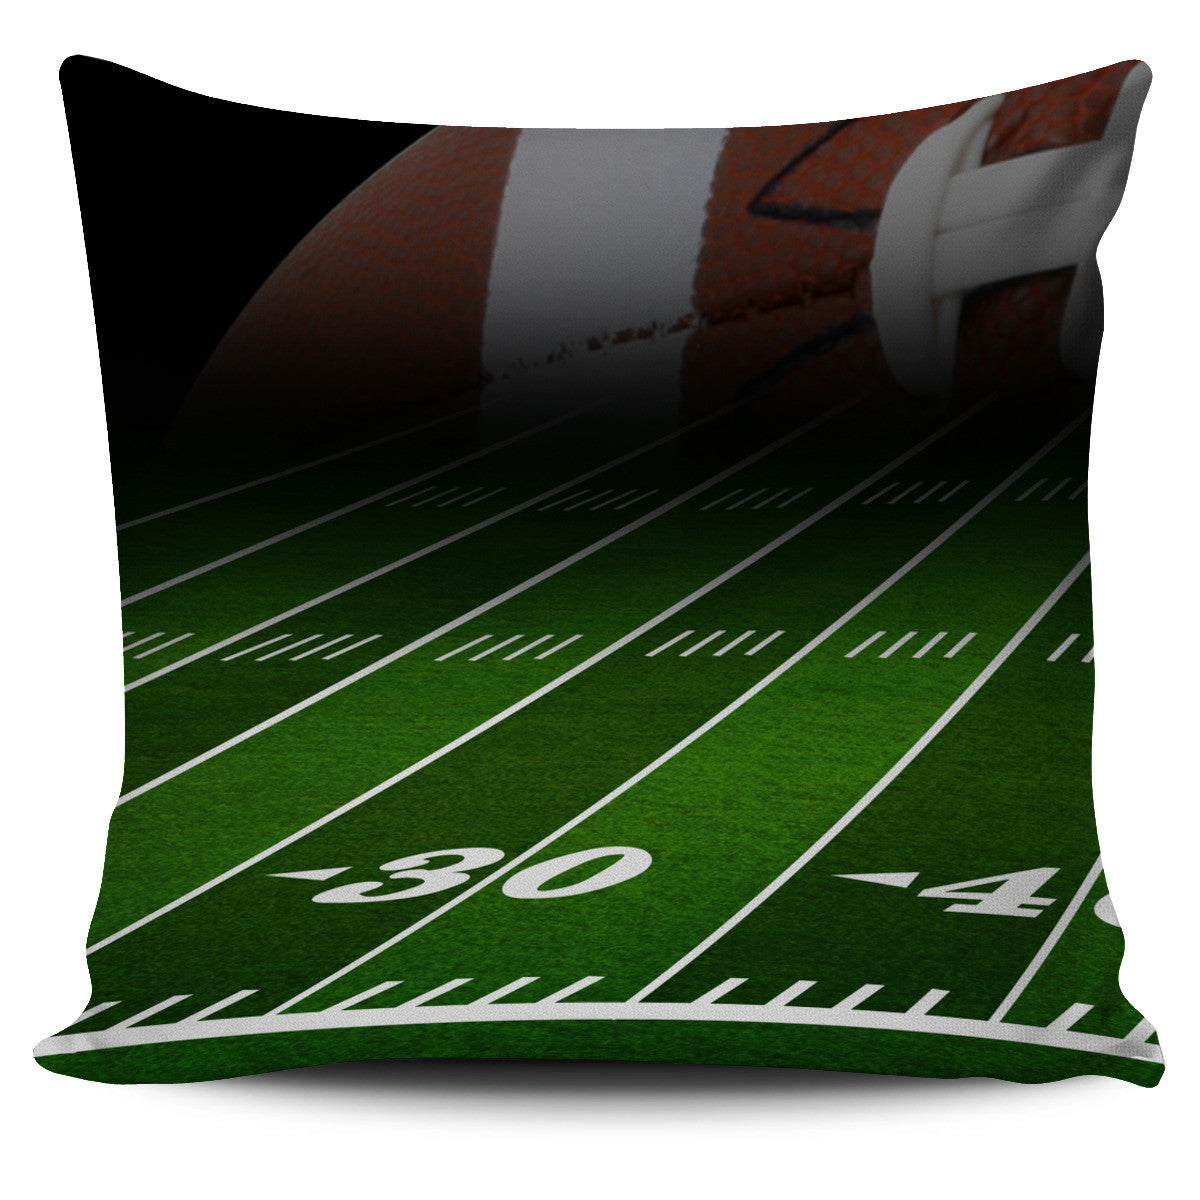 Football Field Pillow Covers